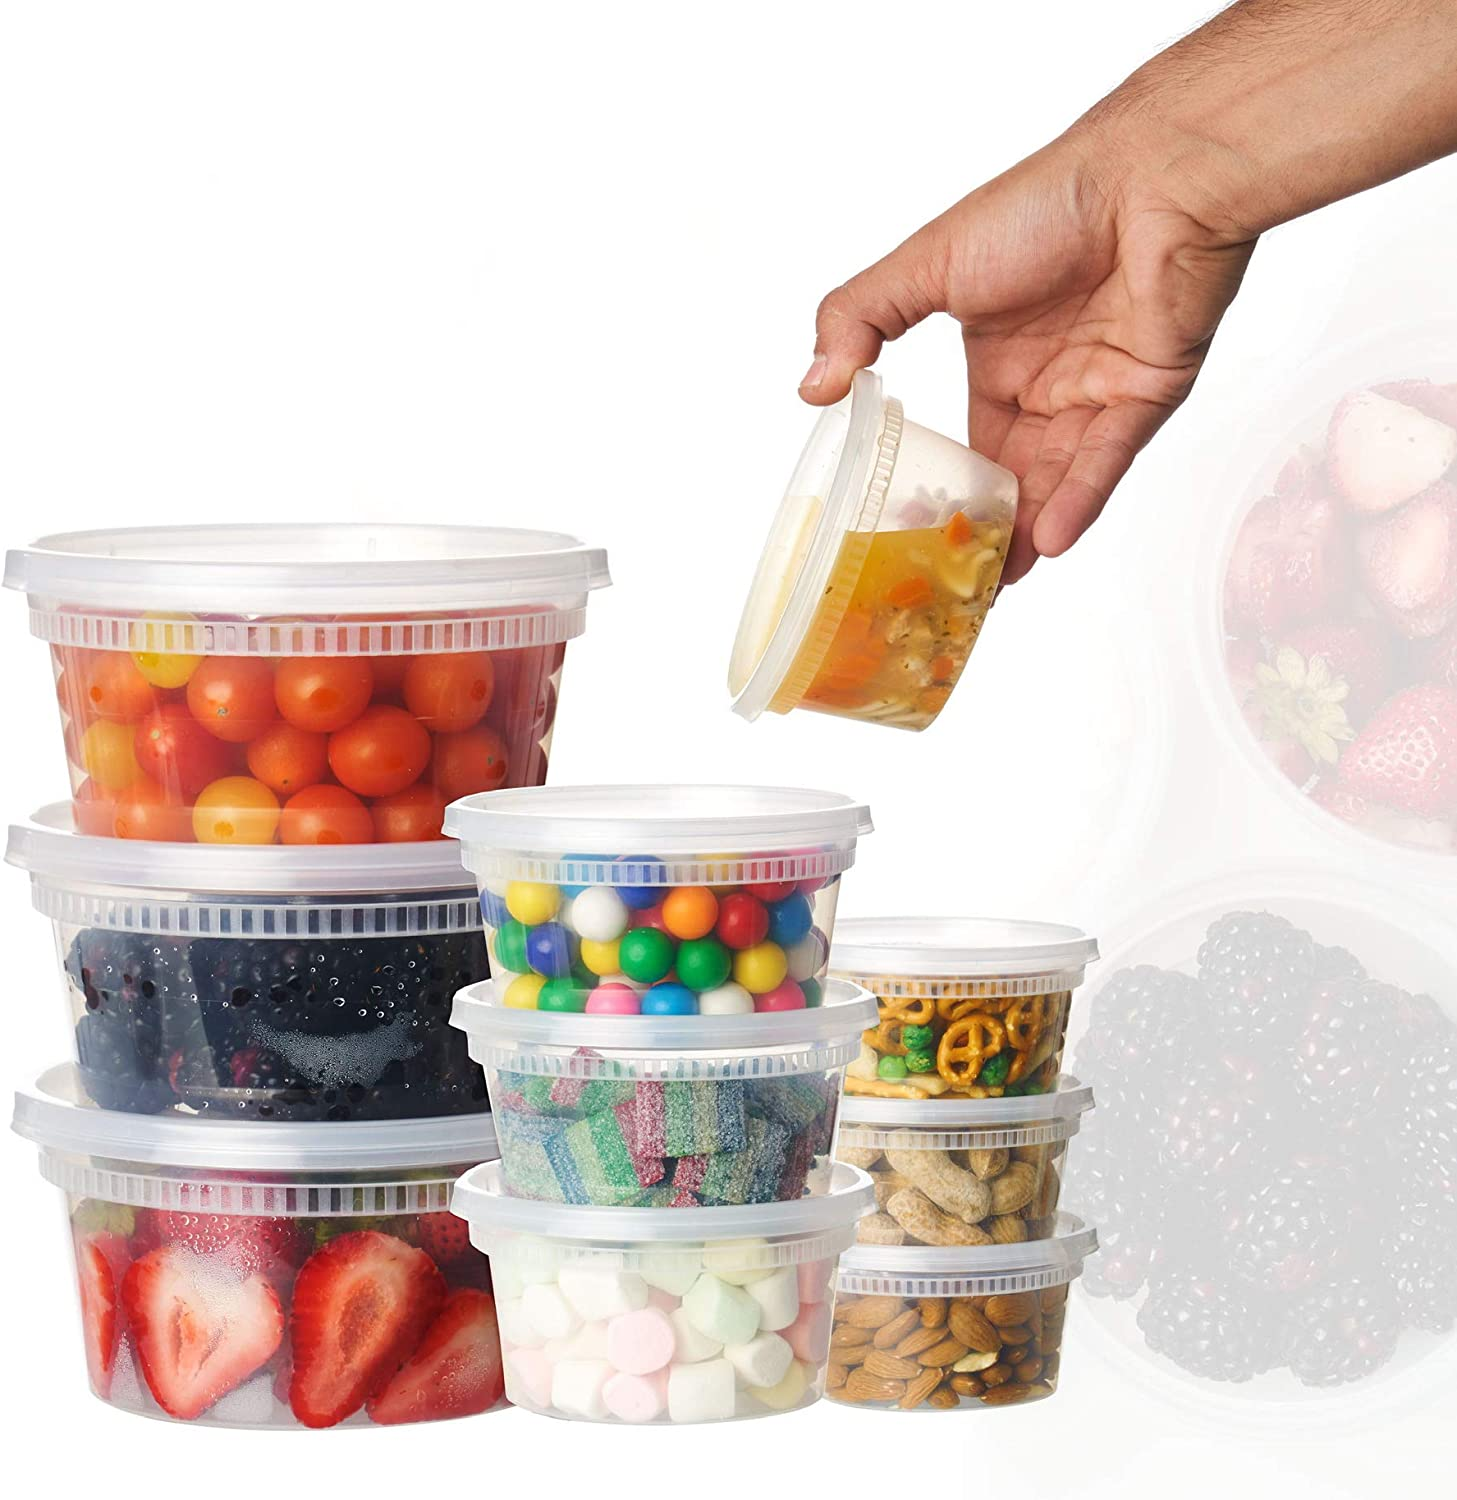 12oz-12sets Plastic Food Storage Containers with Lids, Microwavable Translucent Plastic Deli Container and Lid Combo Pack (12oz)